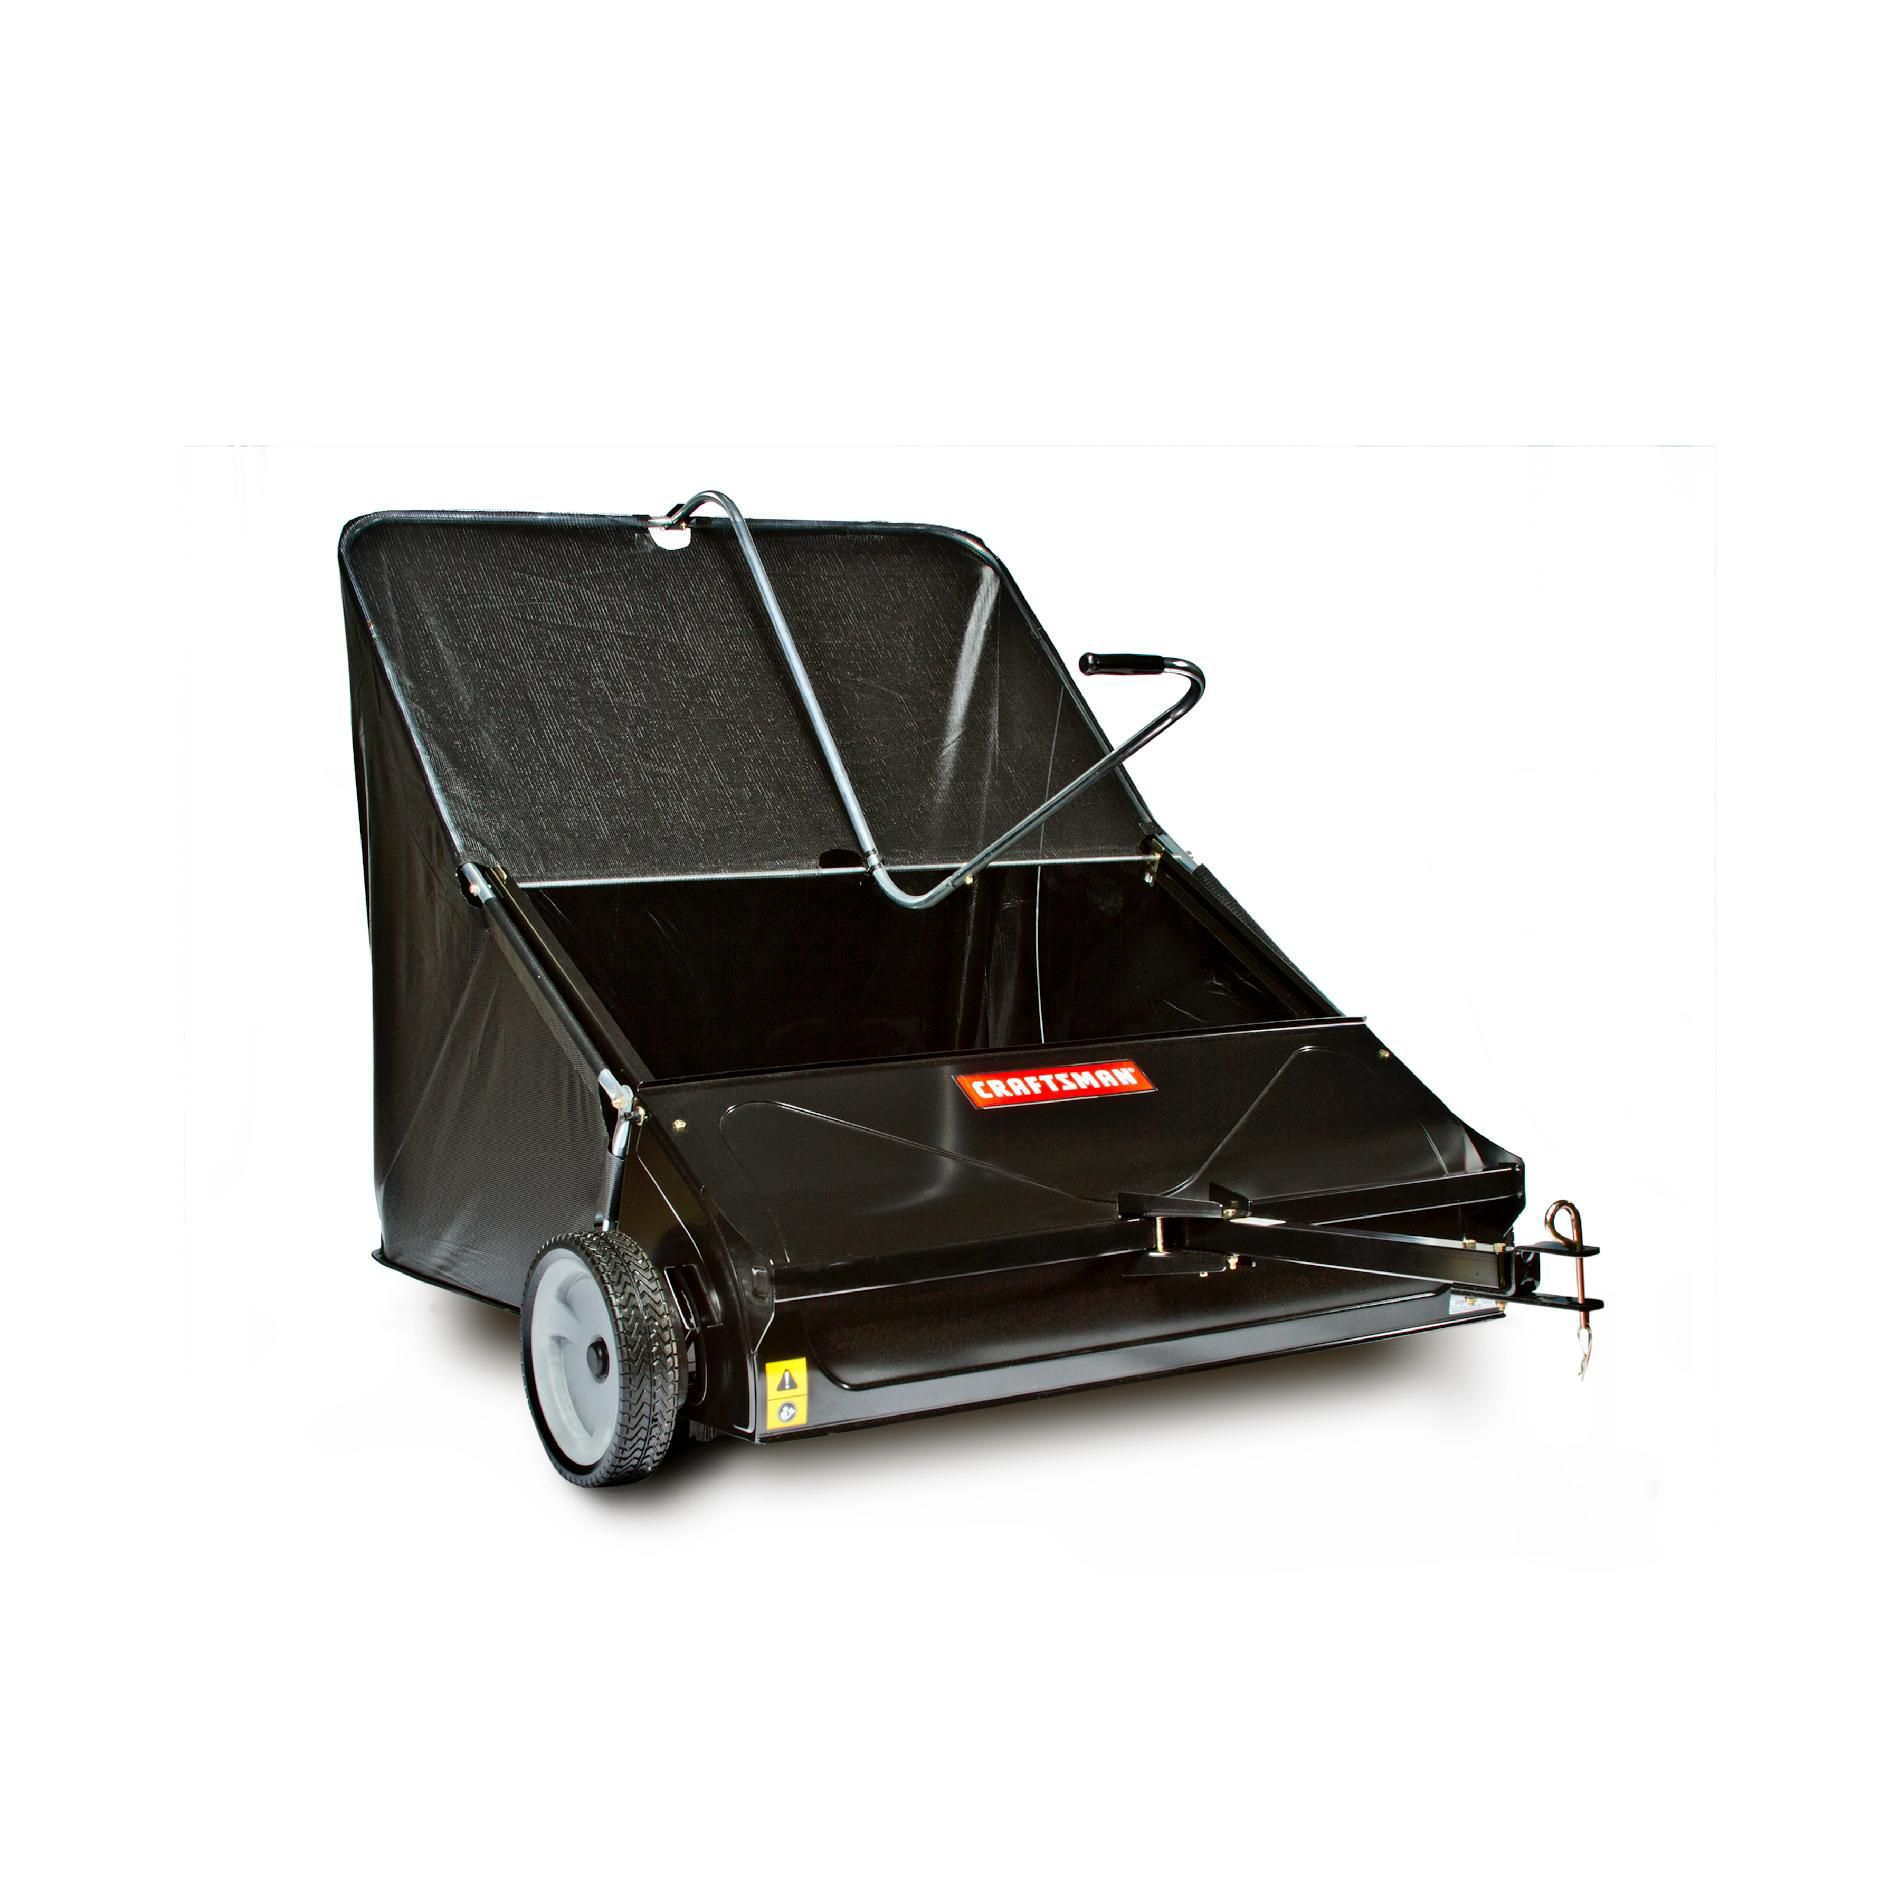 Craftsman 44 high speed sweeper attachment for riding mowers shop your way online shopping for Craftsman garden tractor attachments